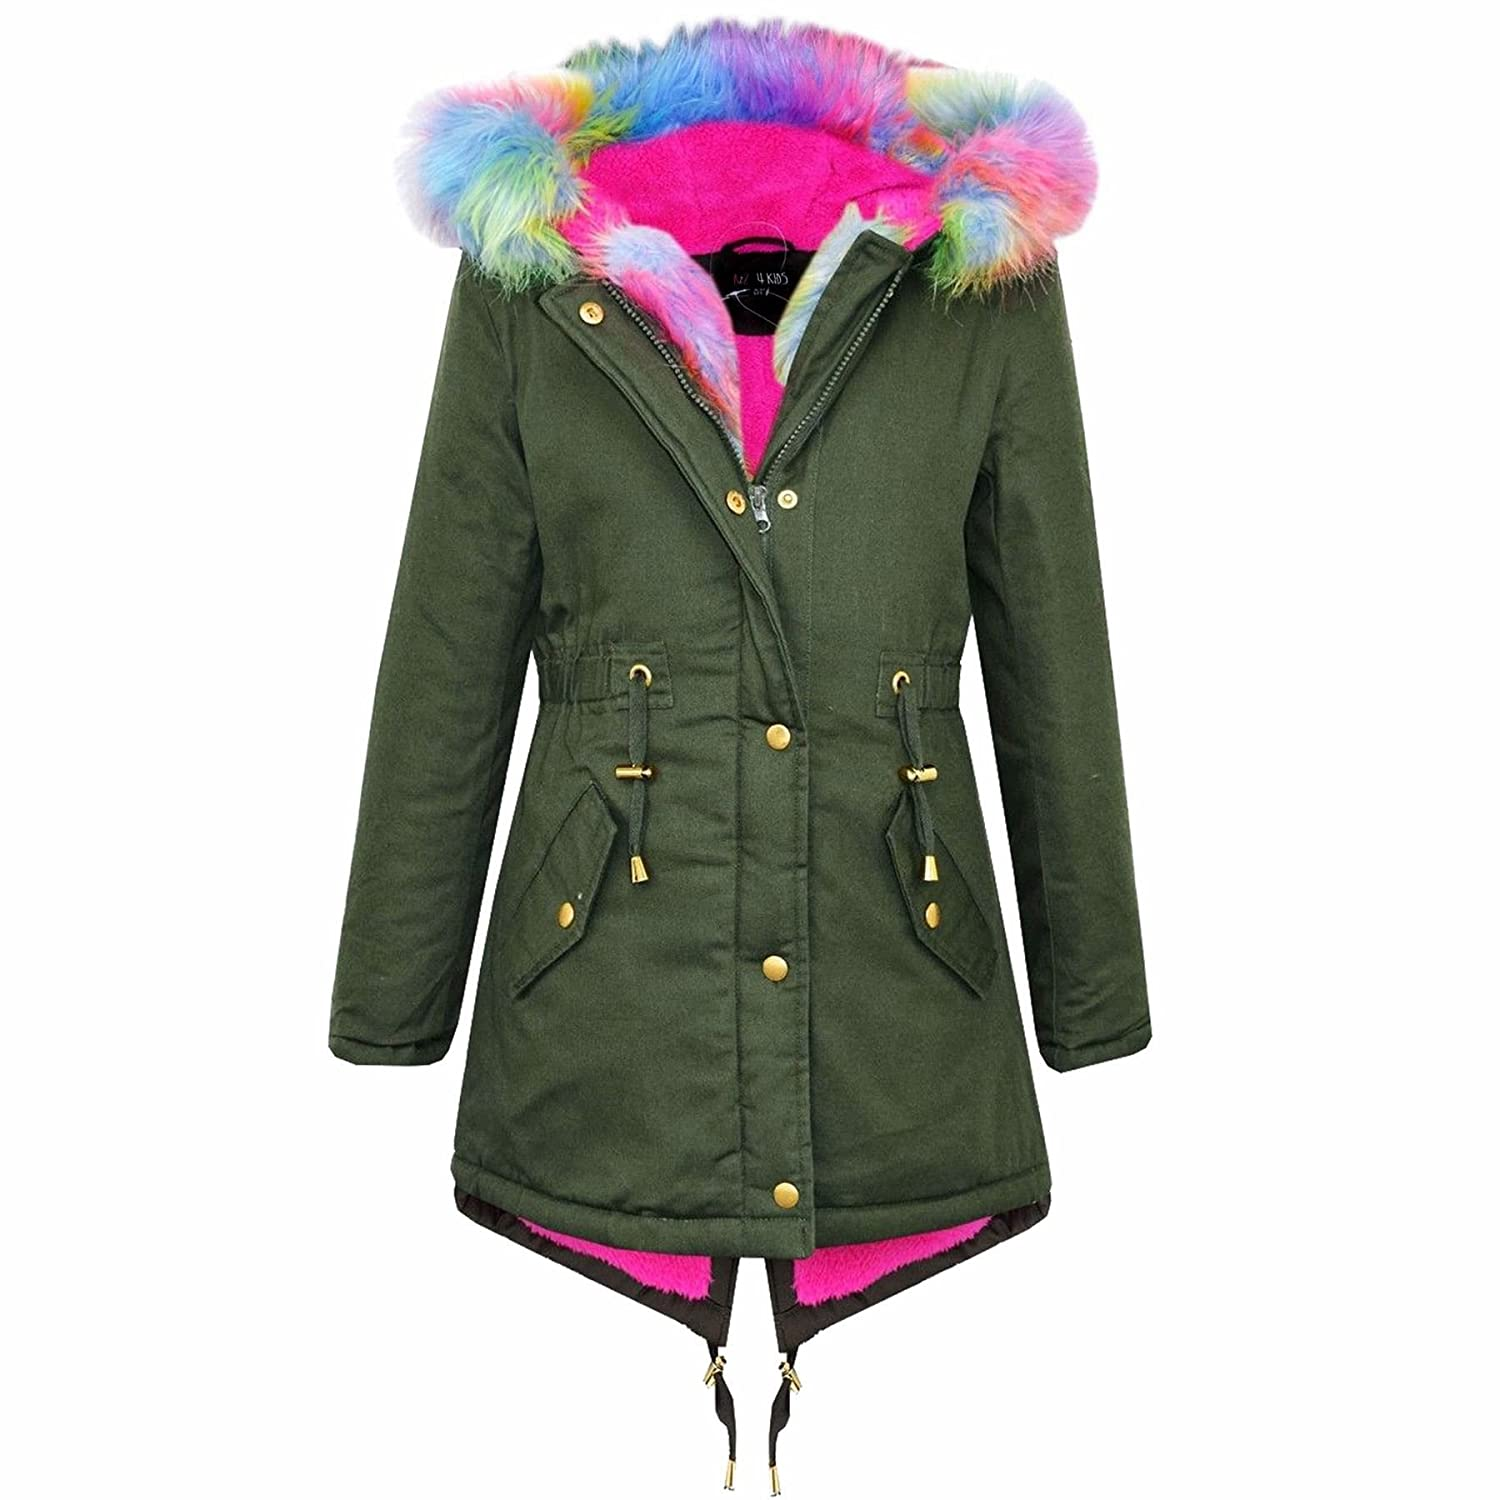 Amazon.co.uk Best Sellers: The most popular items in Girls' Coats